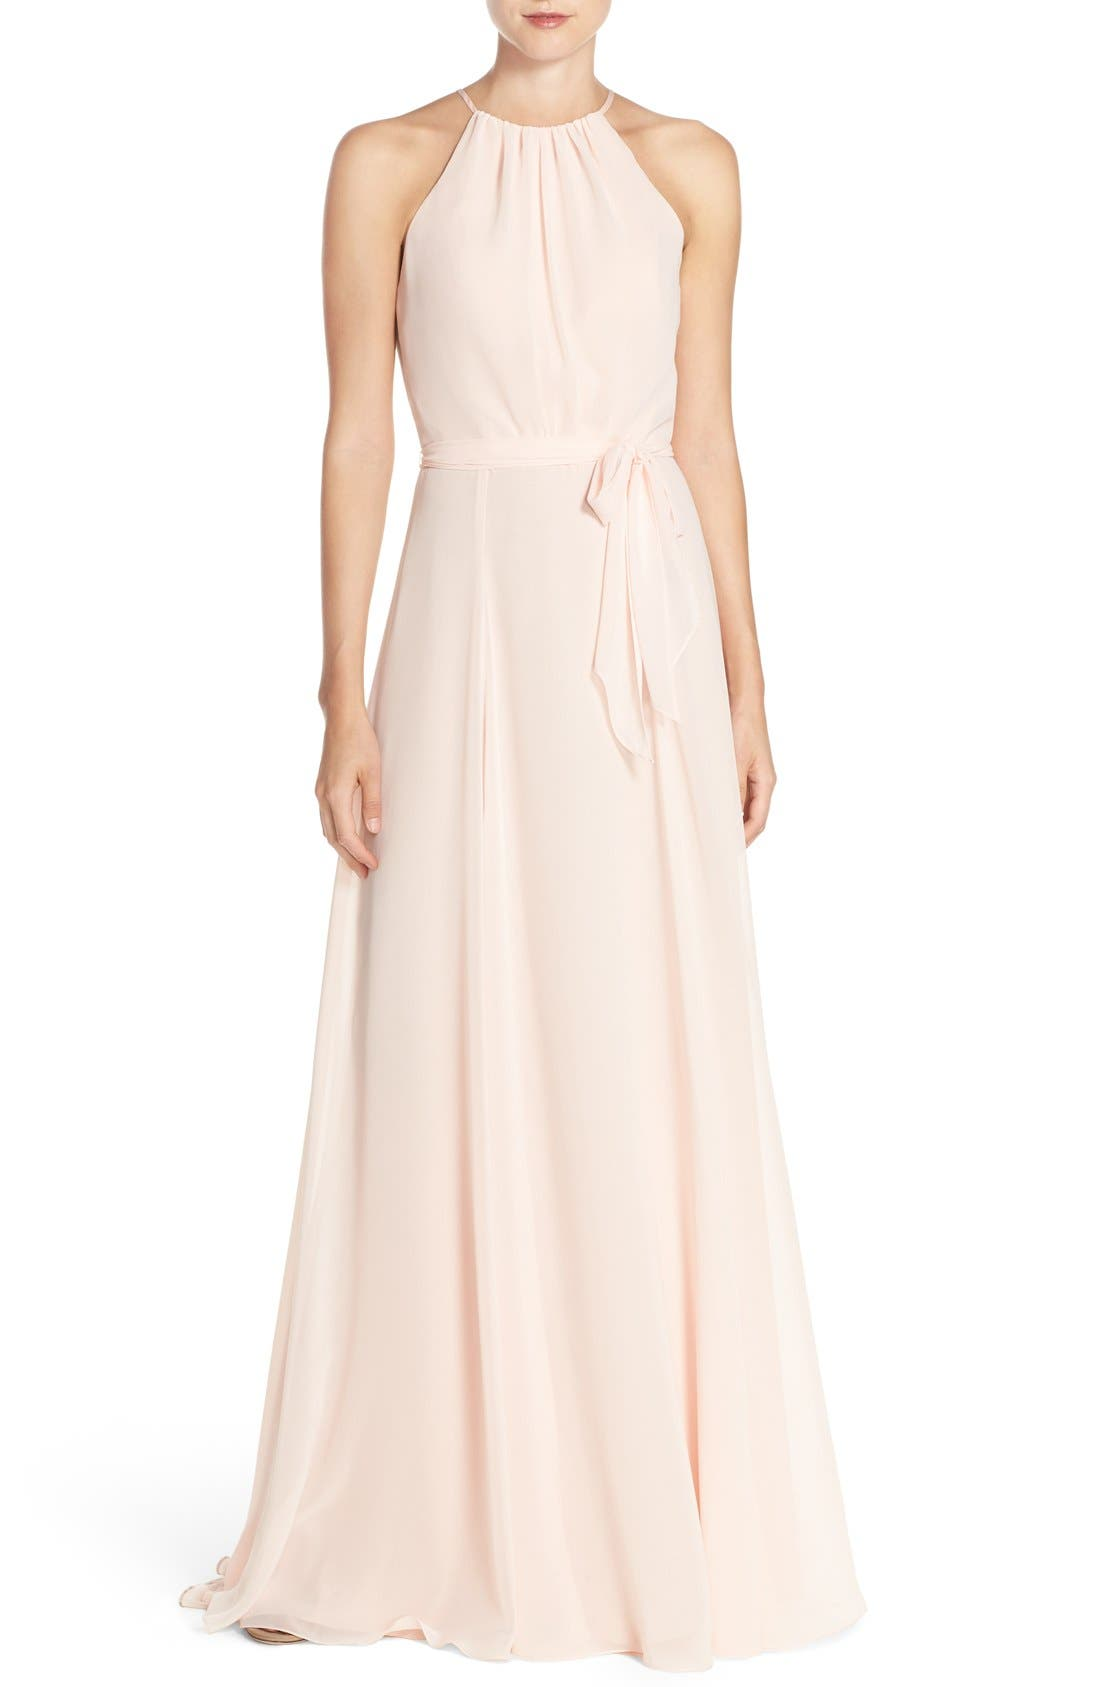 'Delaney' Belted A-Line Chiffon Halter Dress,                         Main,                         color, Blush